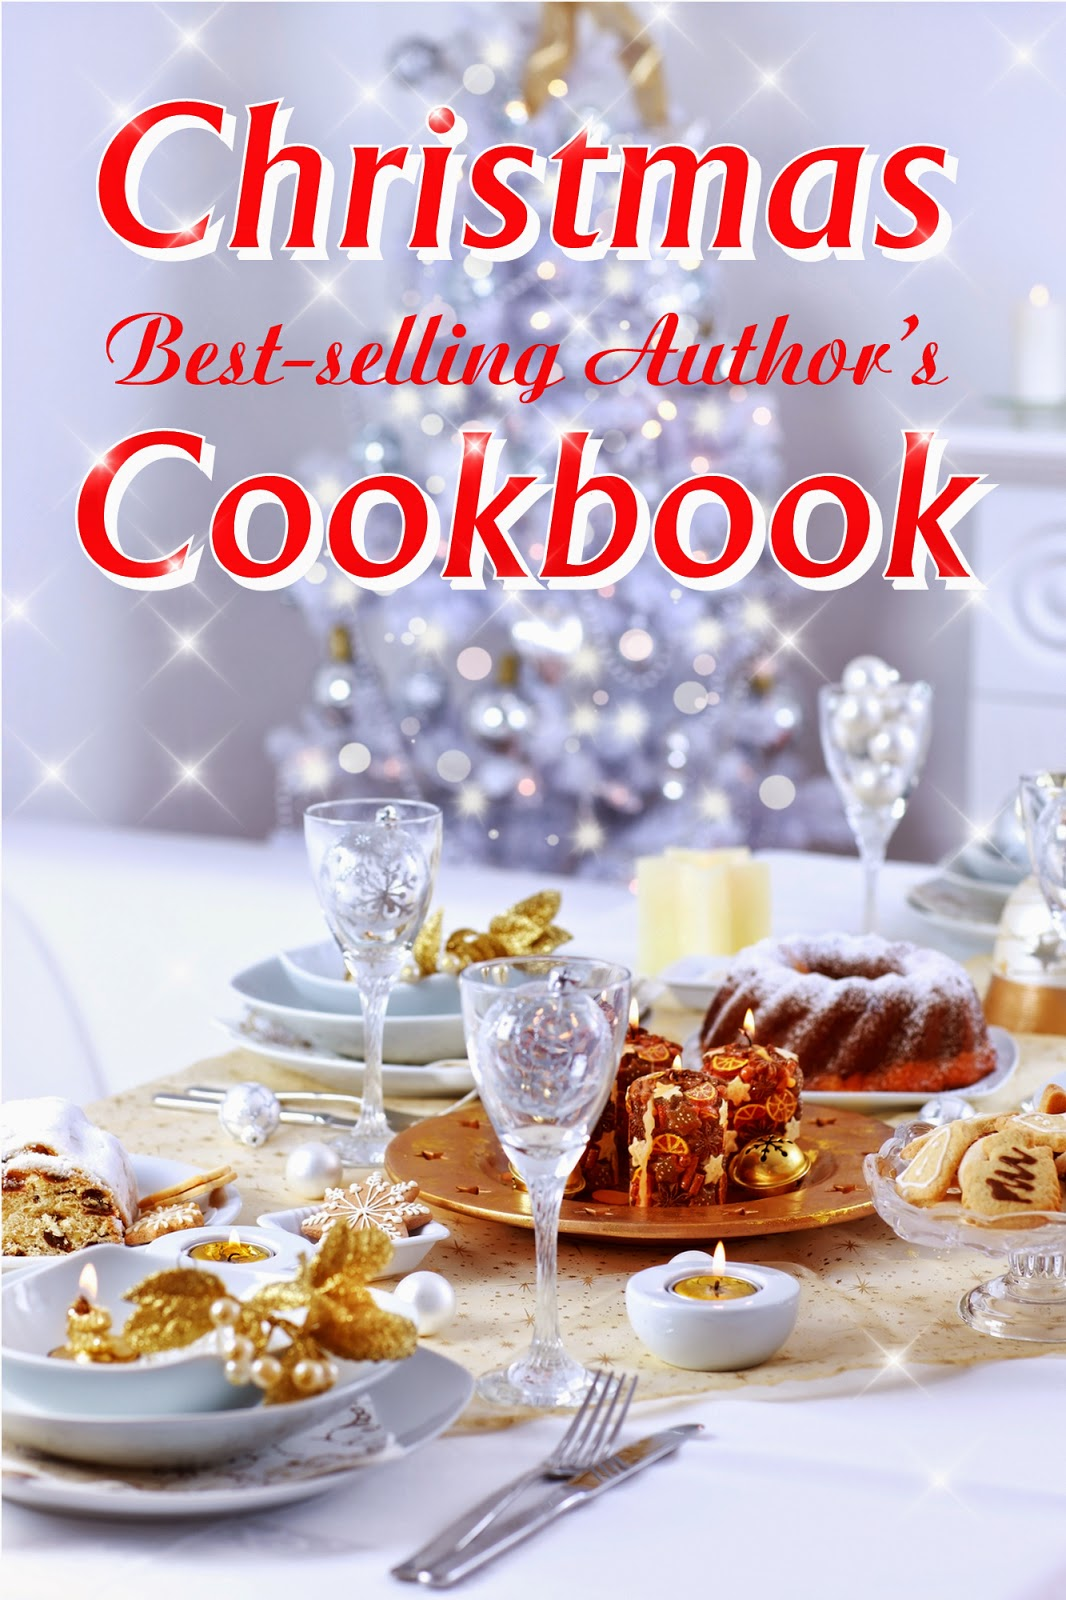 http://www.amazon.com/Christmas-Best-Selling-Authors-Cookbook-Sharon-ebook/dp/B00O2AMWM8/